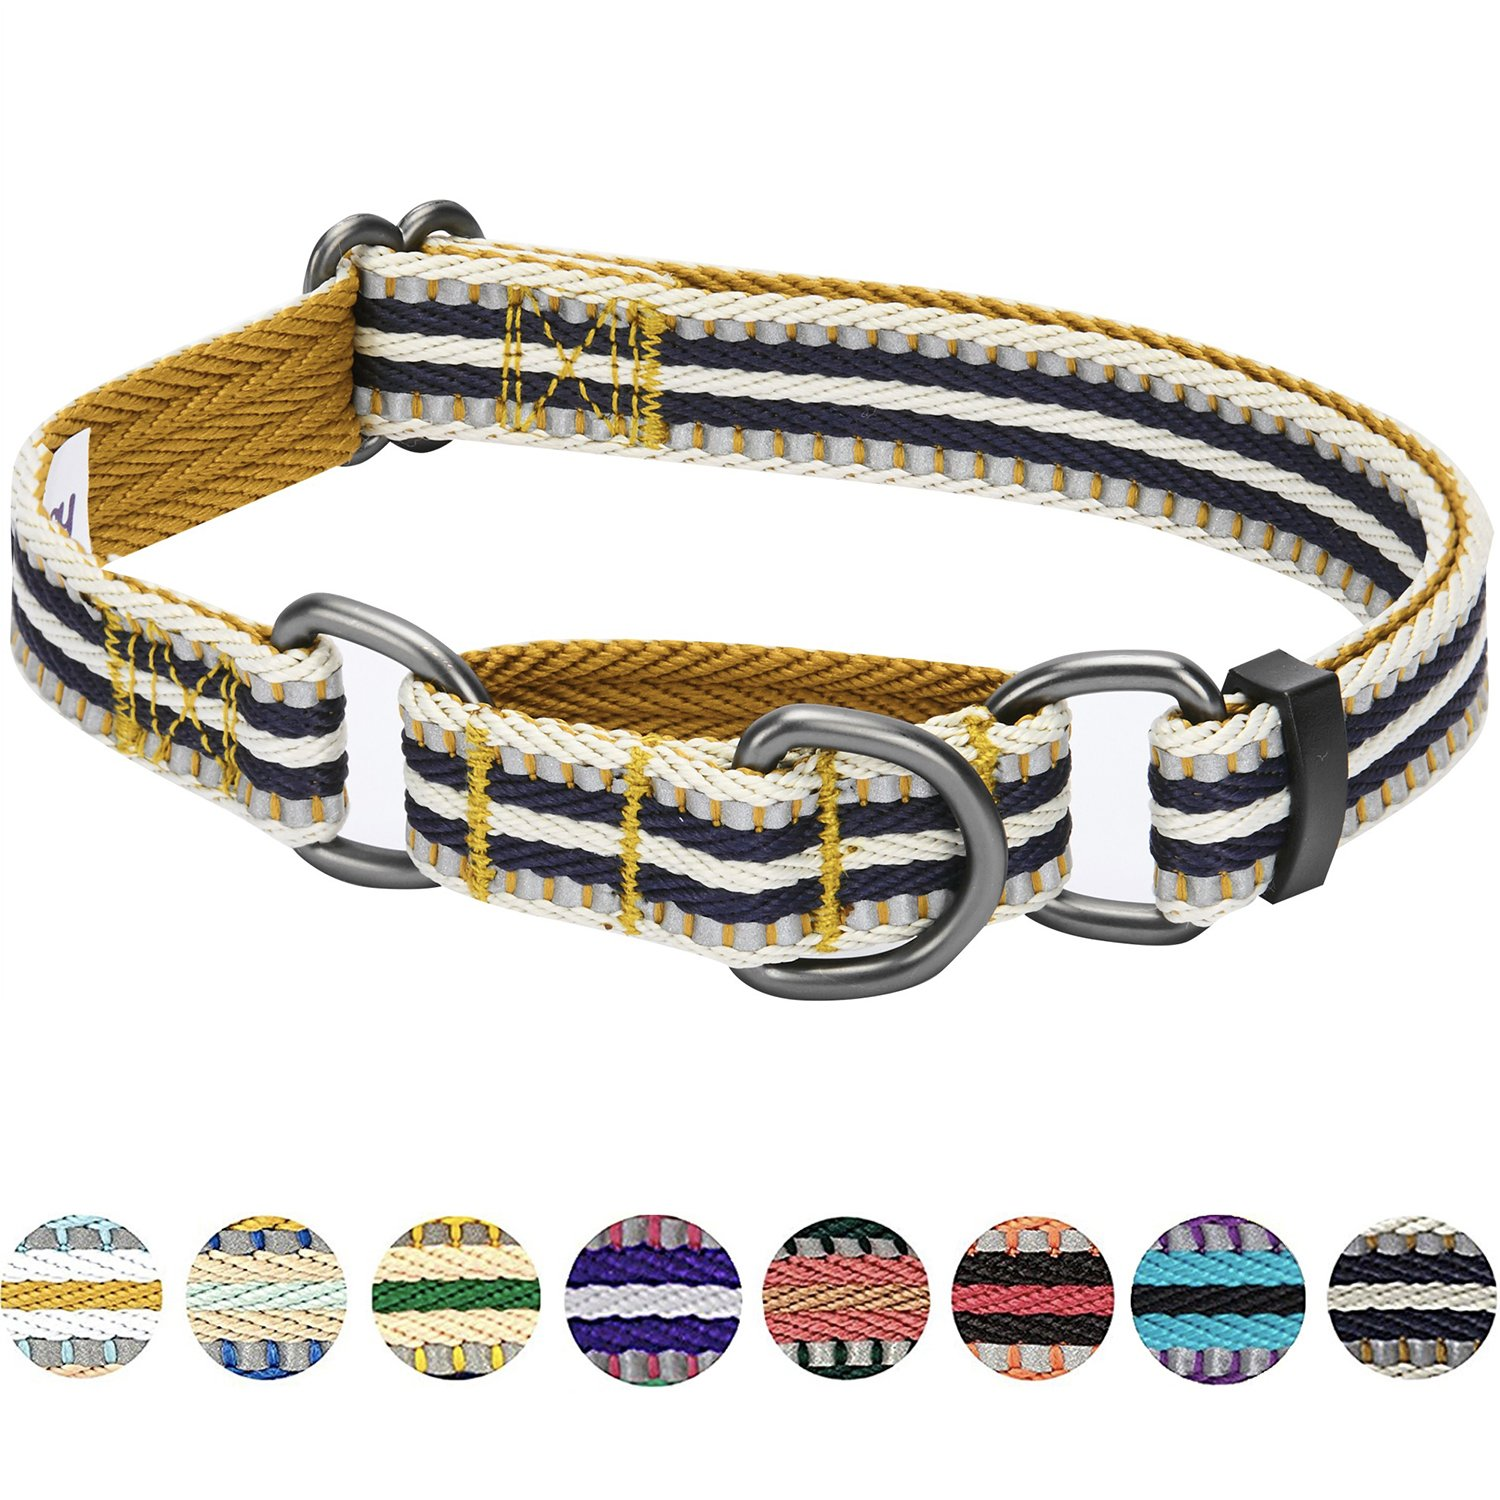 Blueberry Pet 8 Colors 3M Reflective Multi-colored Stripe Safety Training Martingale Dog Collar, Olive and Blue-gray, Small, Heavy Duty Adjustable Collars for Dogs